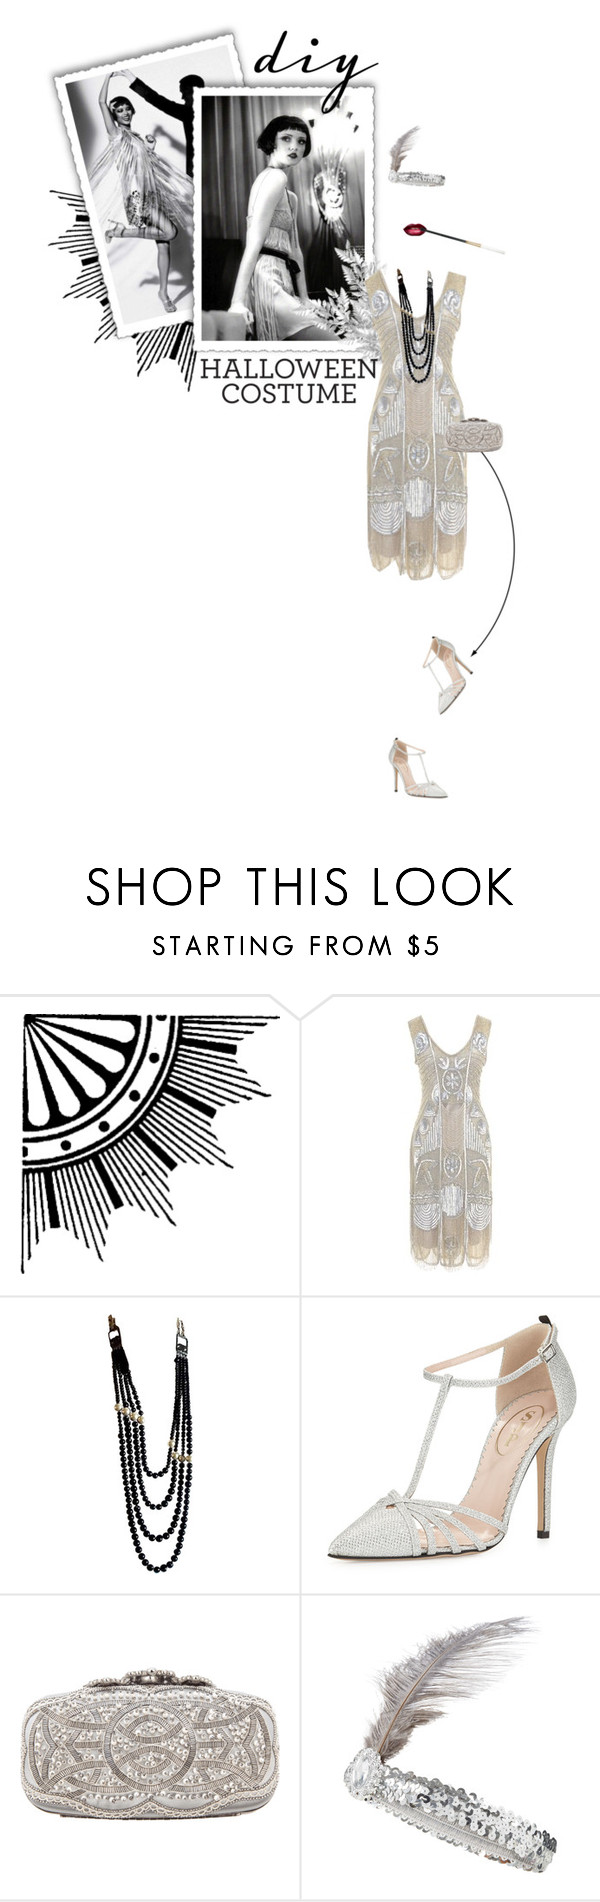 """""""Flapper"""" by kitti-takacs ❤ liked on Polyvore featuring Unique Vintage, Chanel, SJP, Oscar de la Renta, Accessorize and diycostume"""